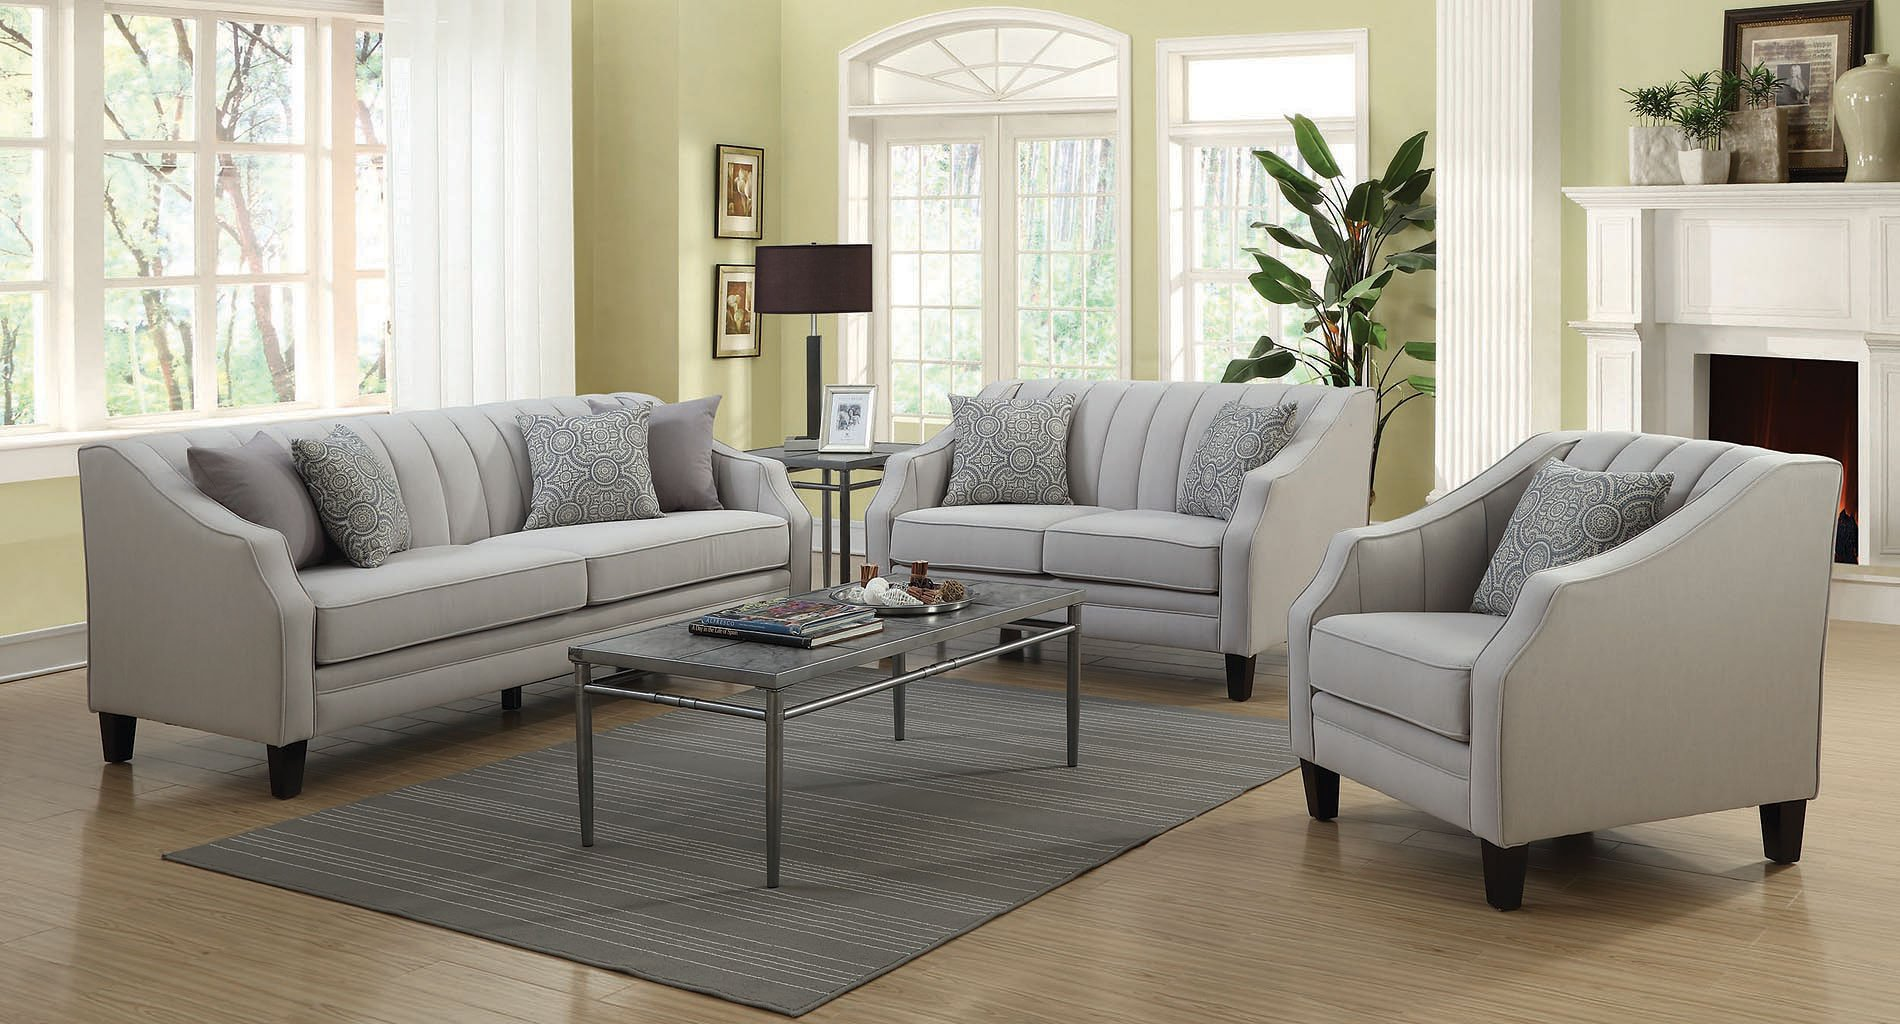 Loxley Living Room Set